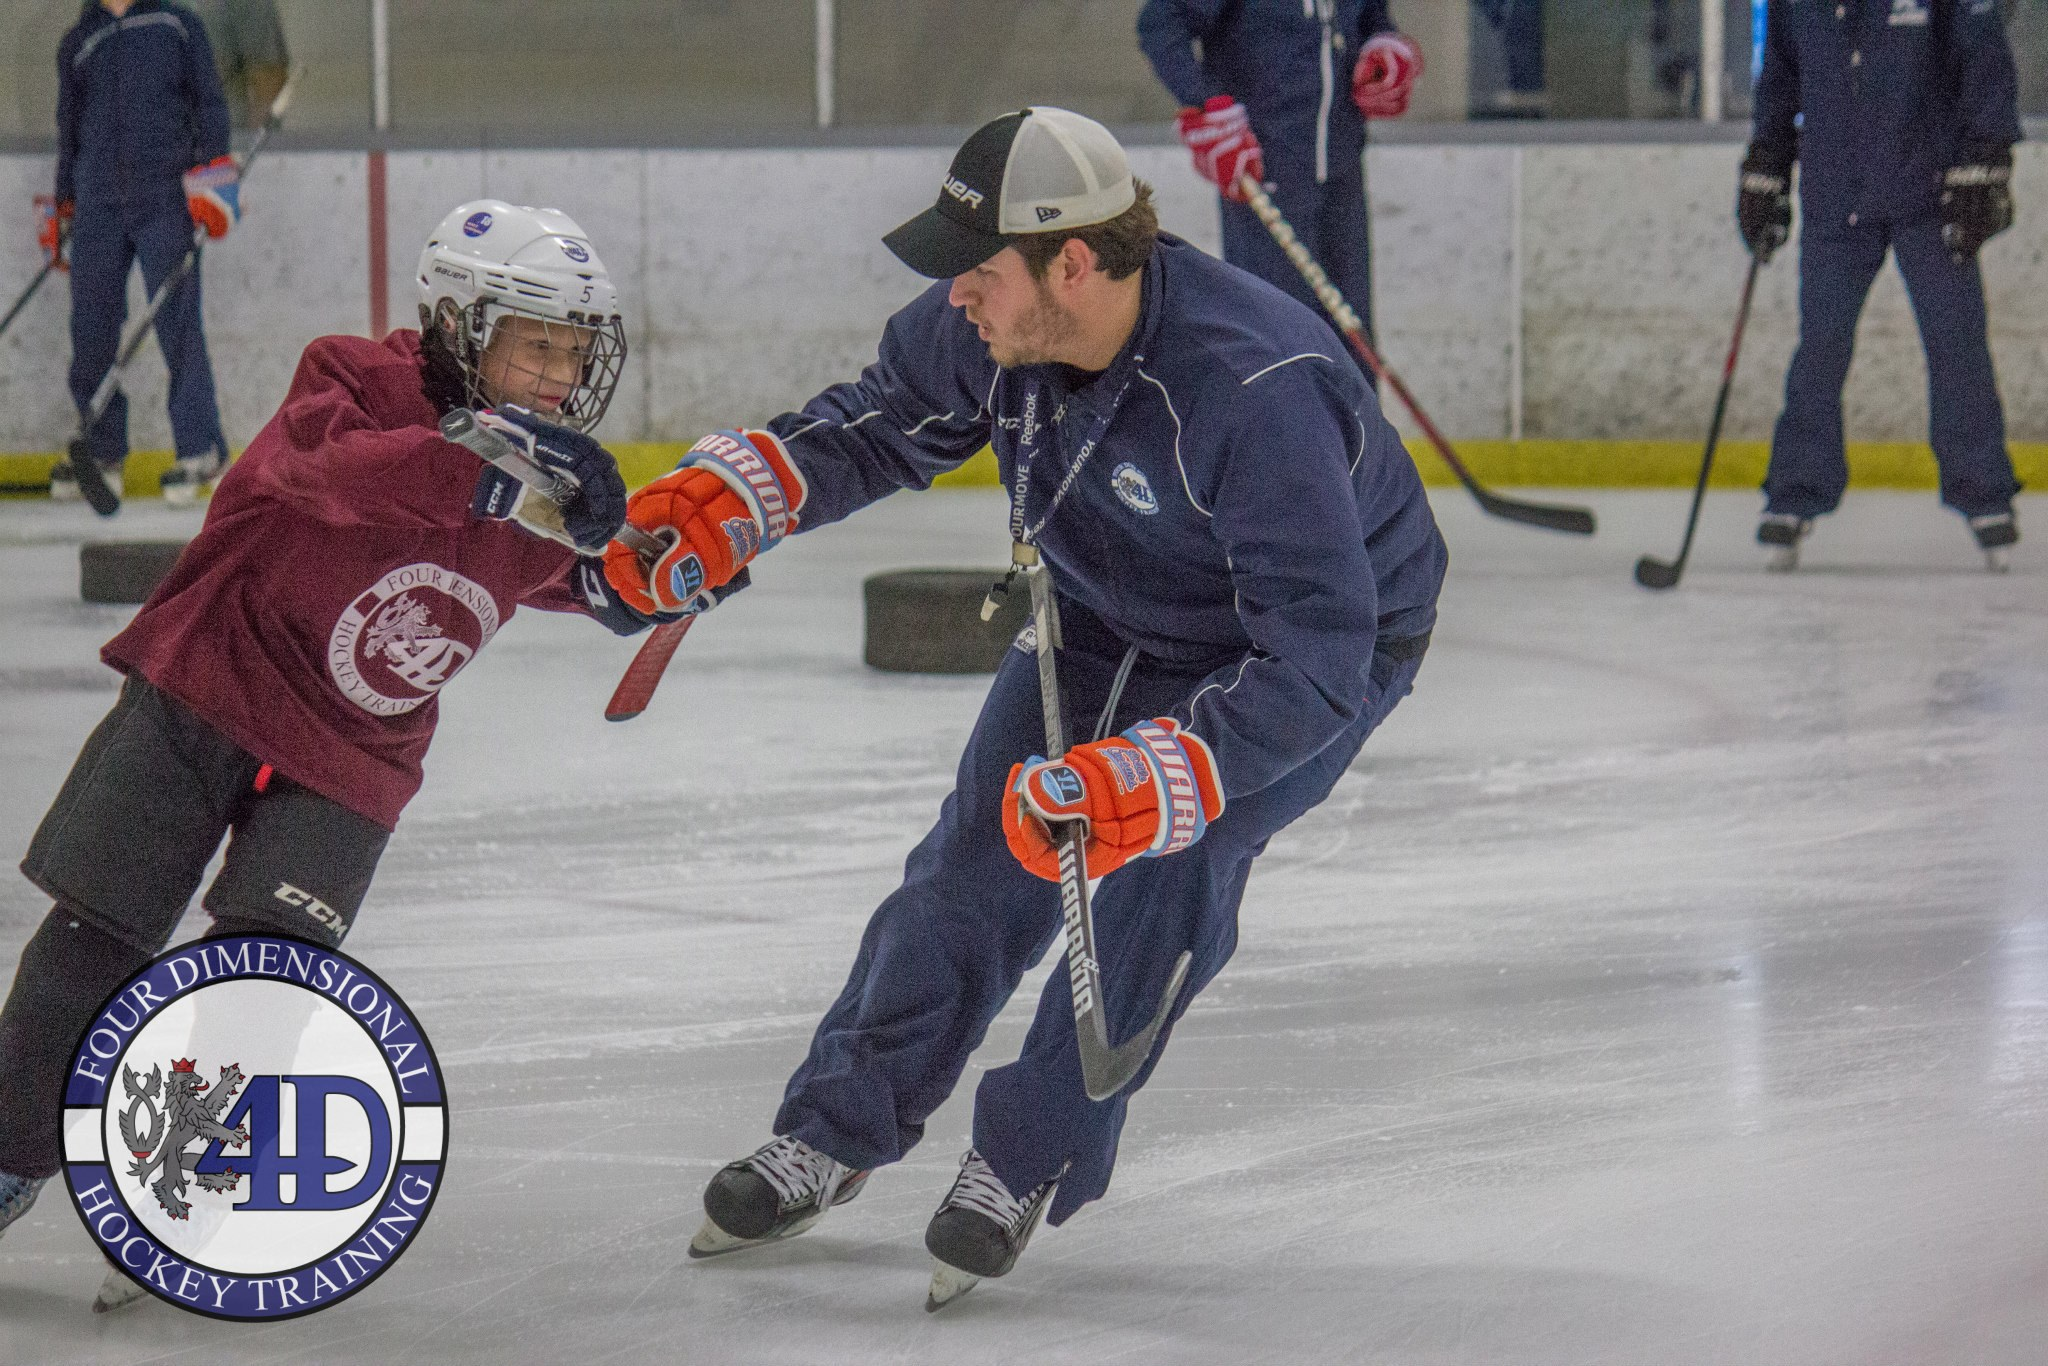 4D Hockey US Camp